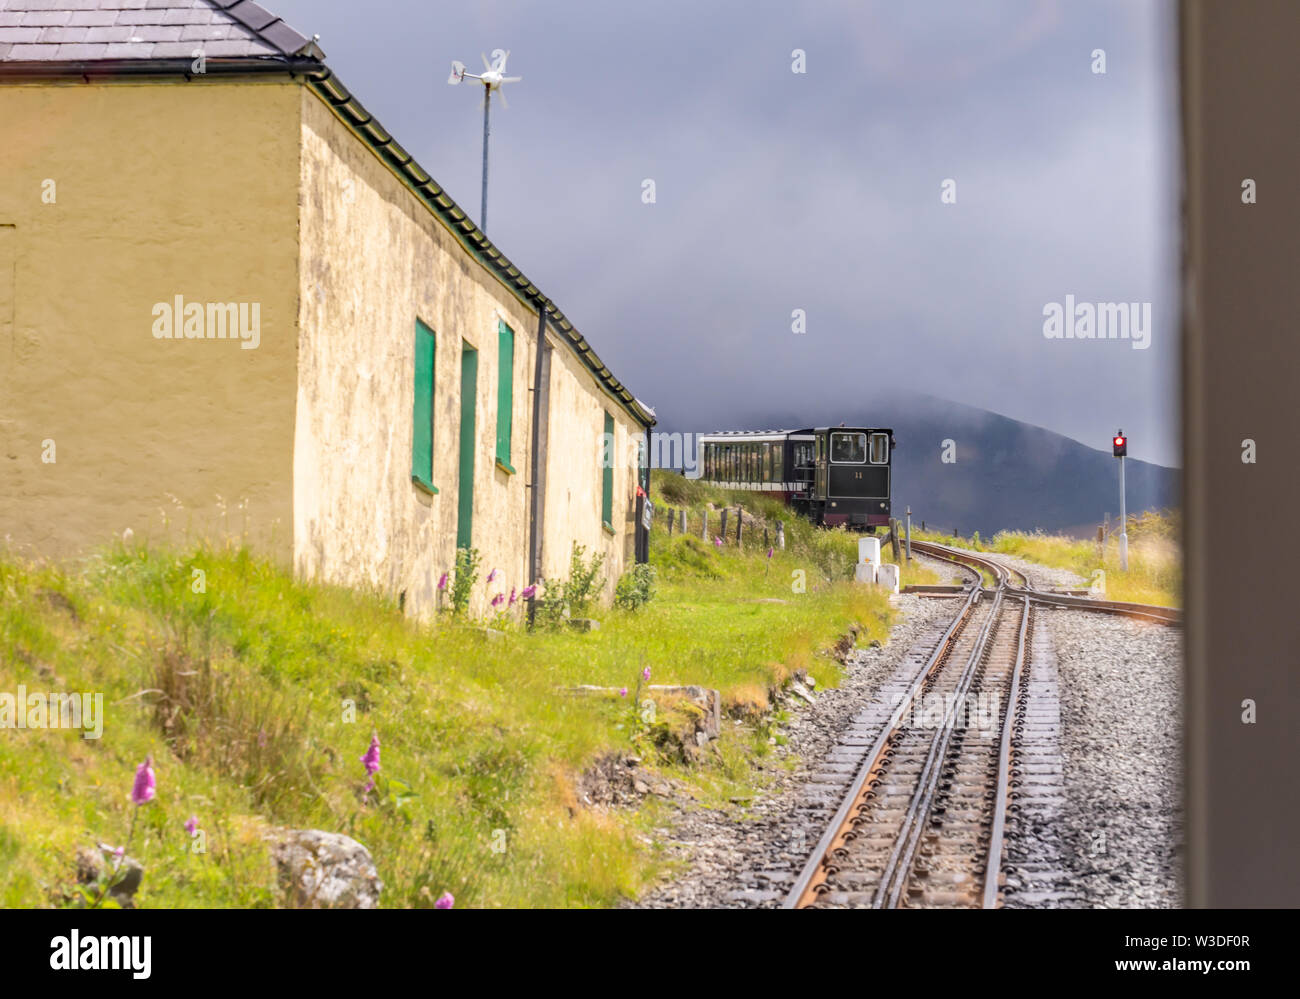 Steam train arriving at Halfway House junction on its inward bound journey from the summit of Mount Snowdon on the Mount Snowdon Railway Line - Stock Image